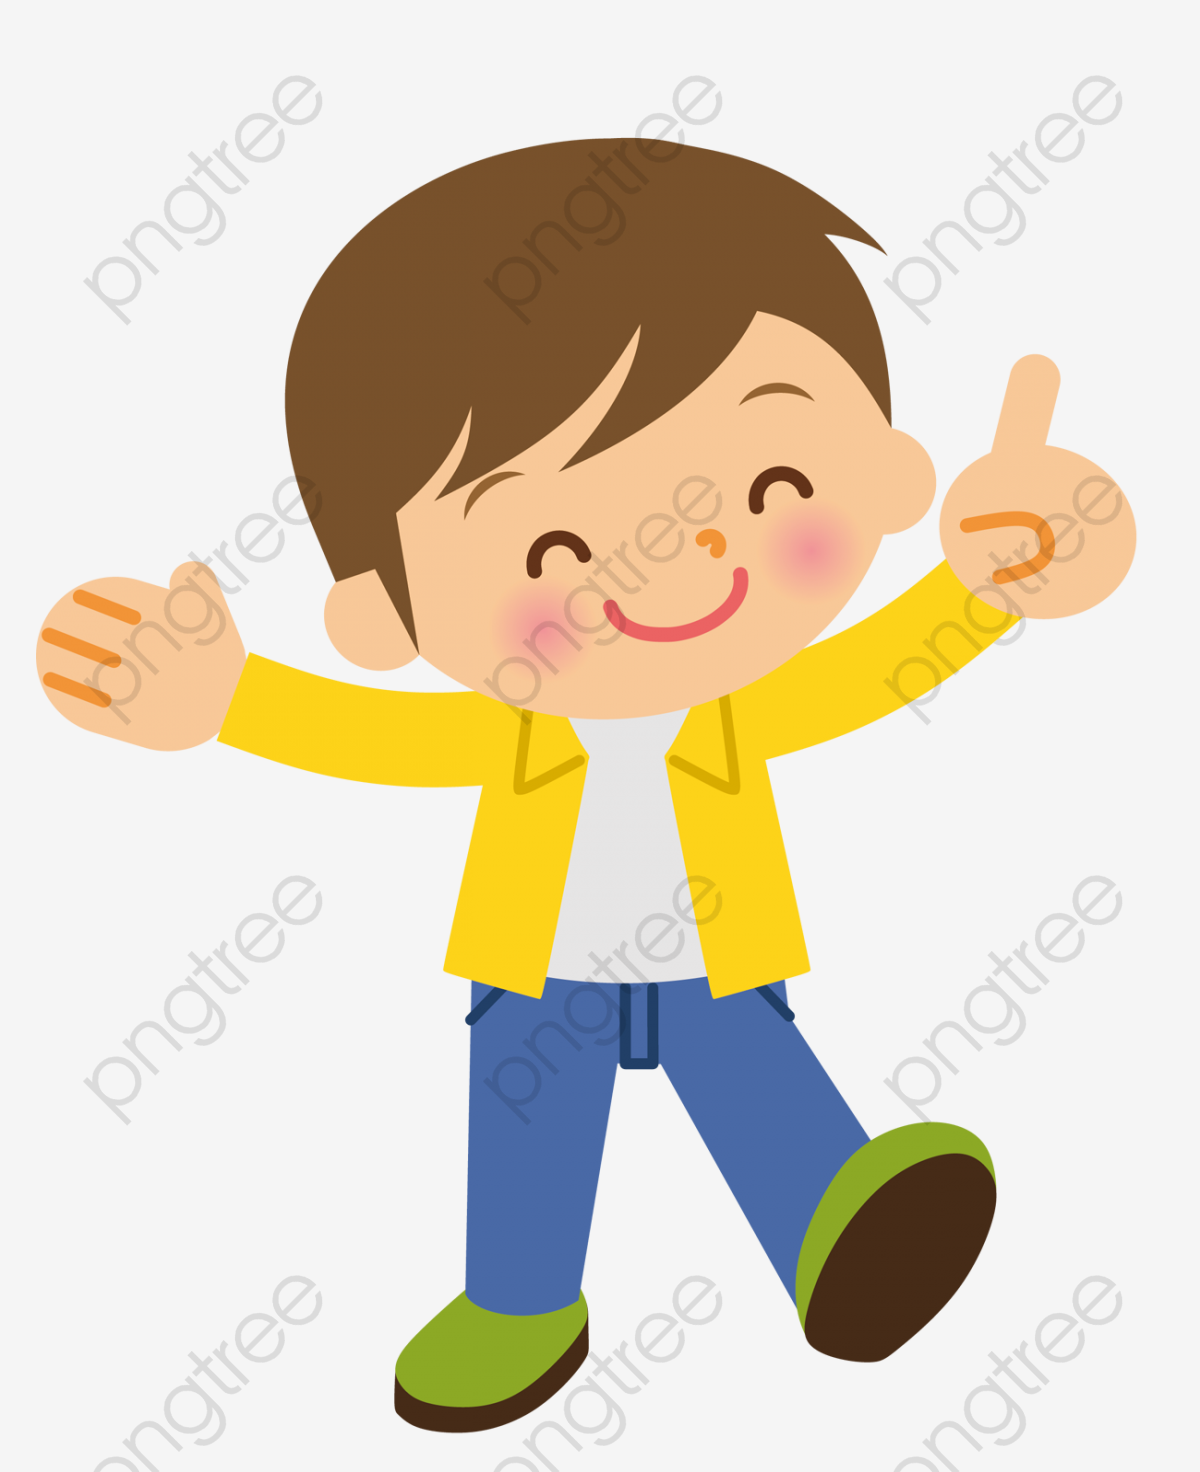 Boy clipart smile.